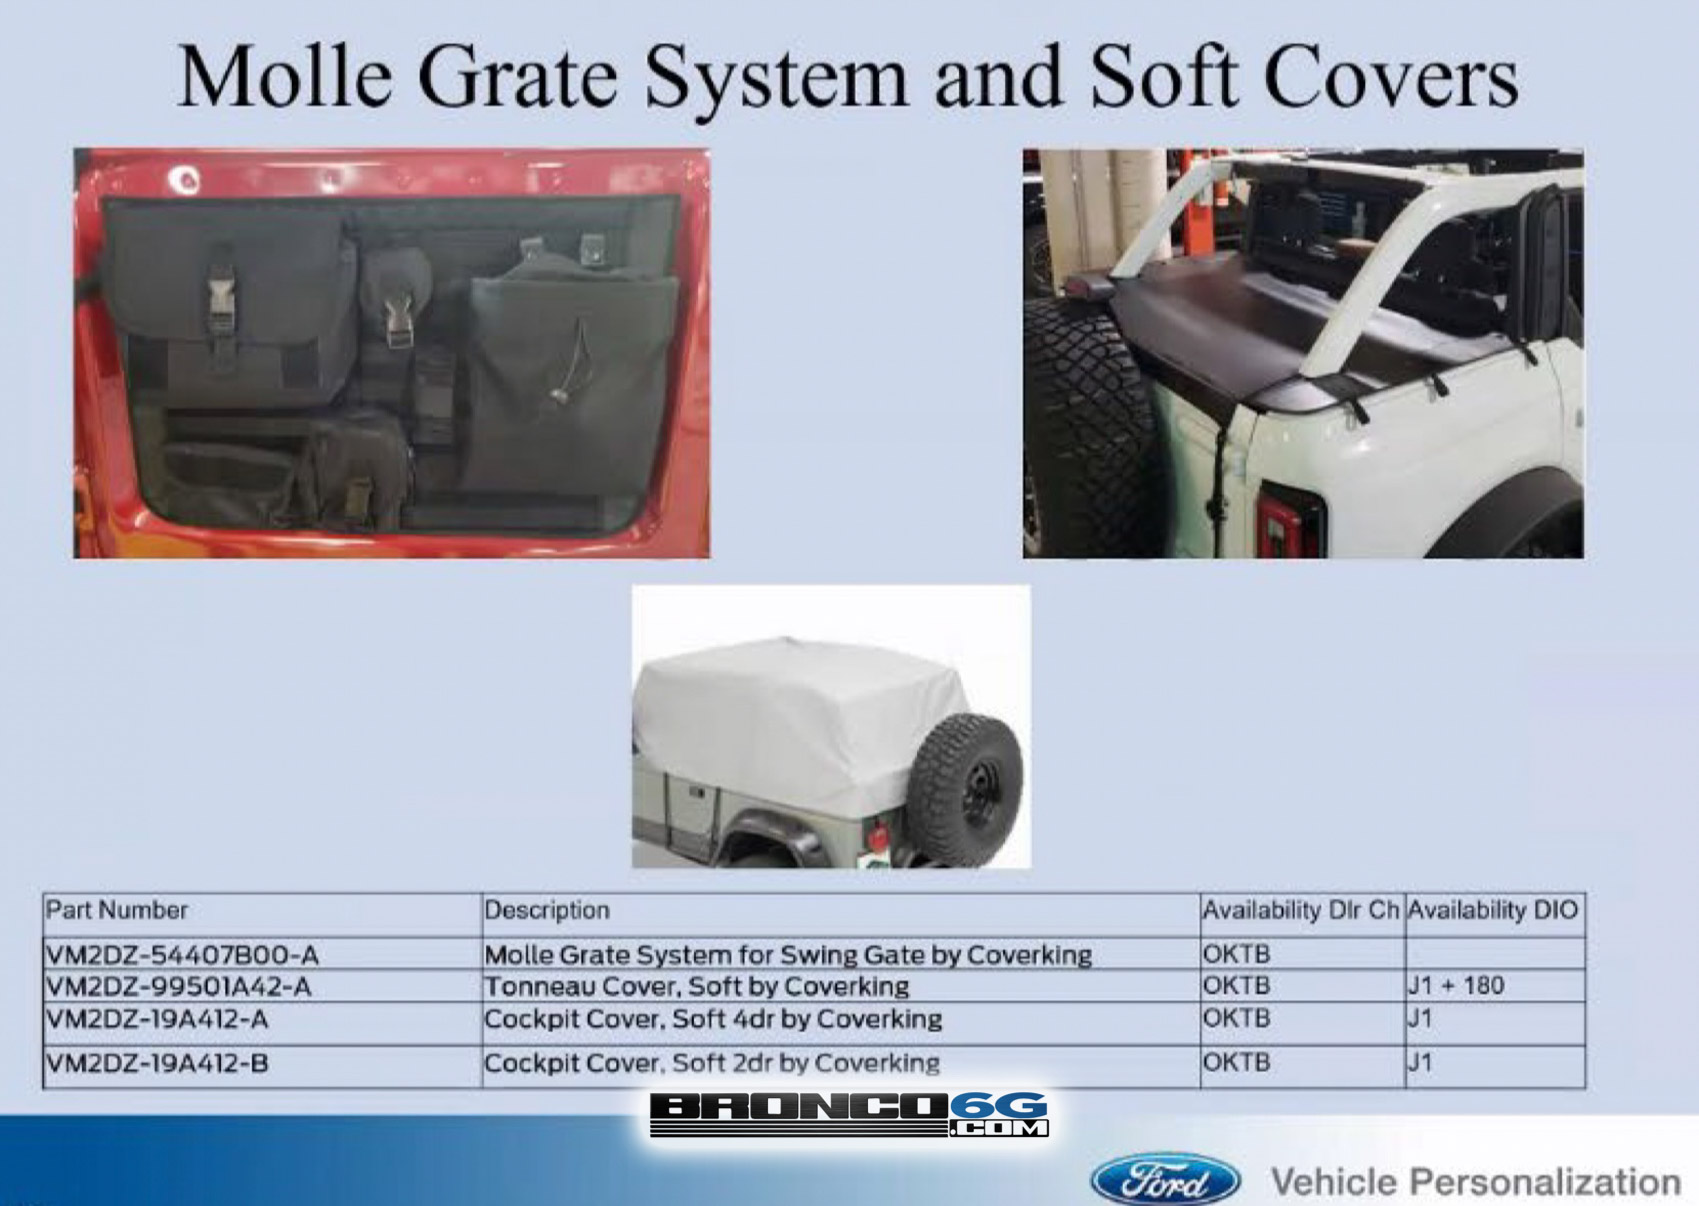 2021 Bronco Molle Grate System and Soft Covers Ford Performance OEM factory accessory.jpg